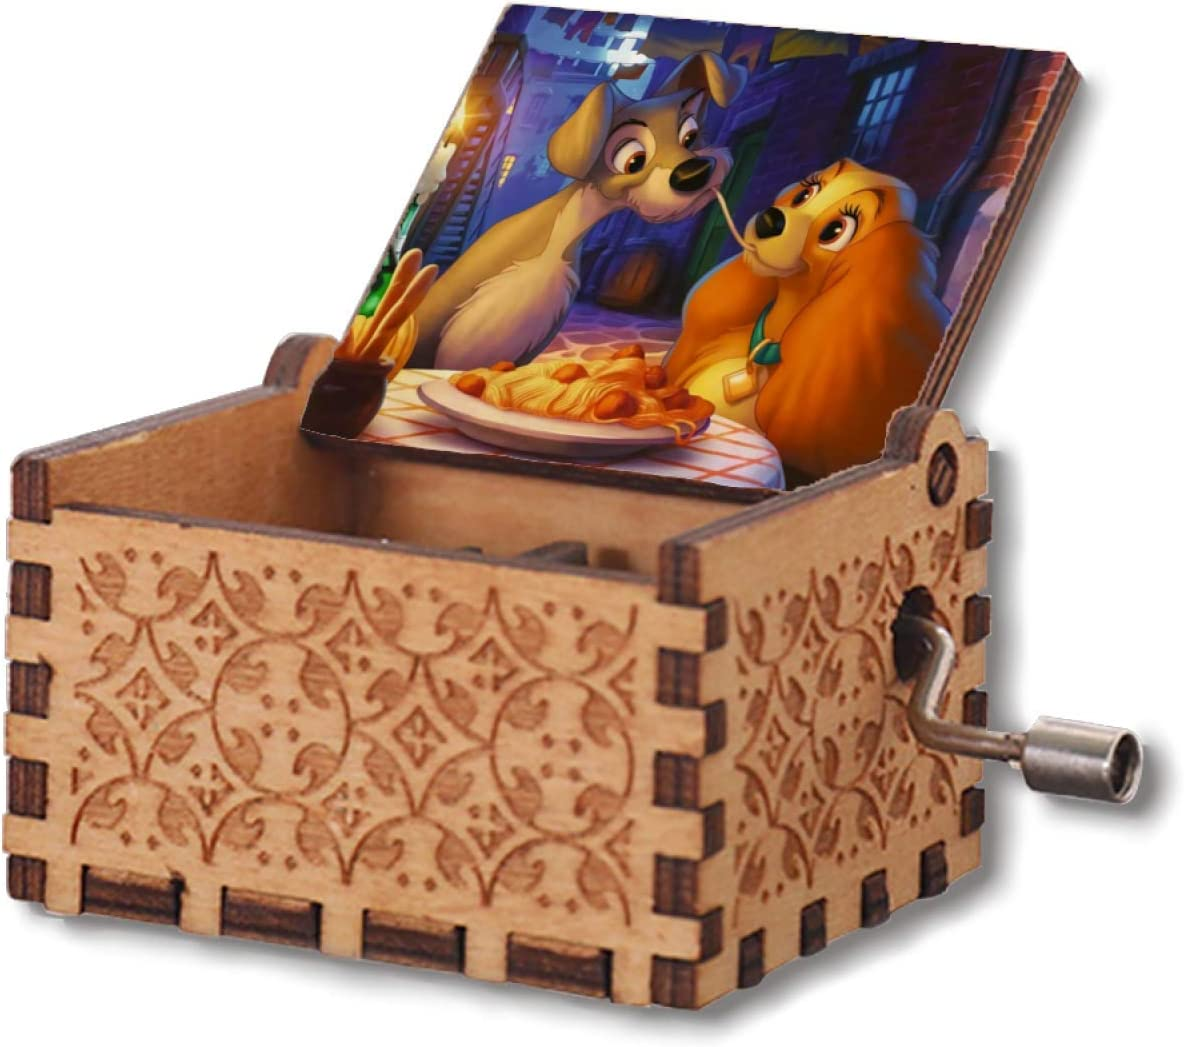 VINMEN Lady The Tramp Wooden Music Box Hand Crank Carved Musical Box Gifts for Birthday Hand-Operated Toys for Kids Boys Girls